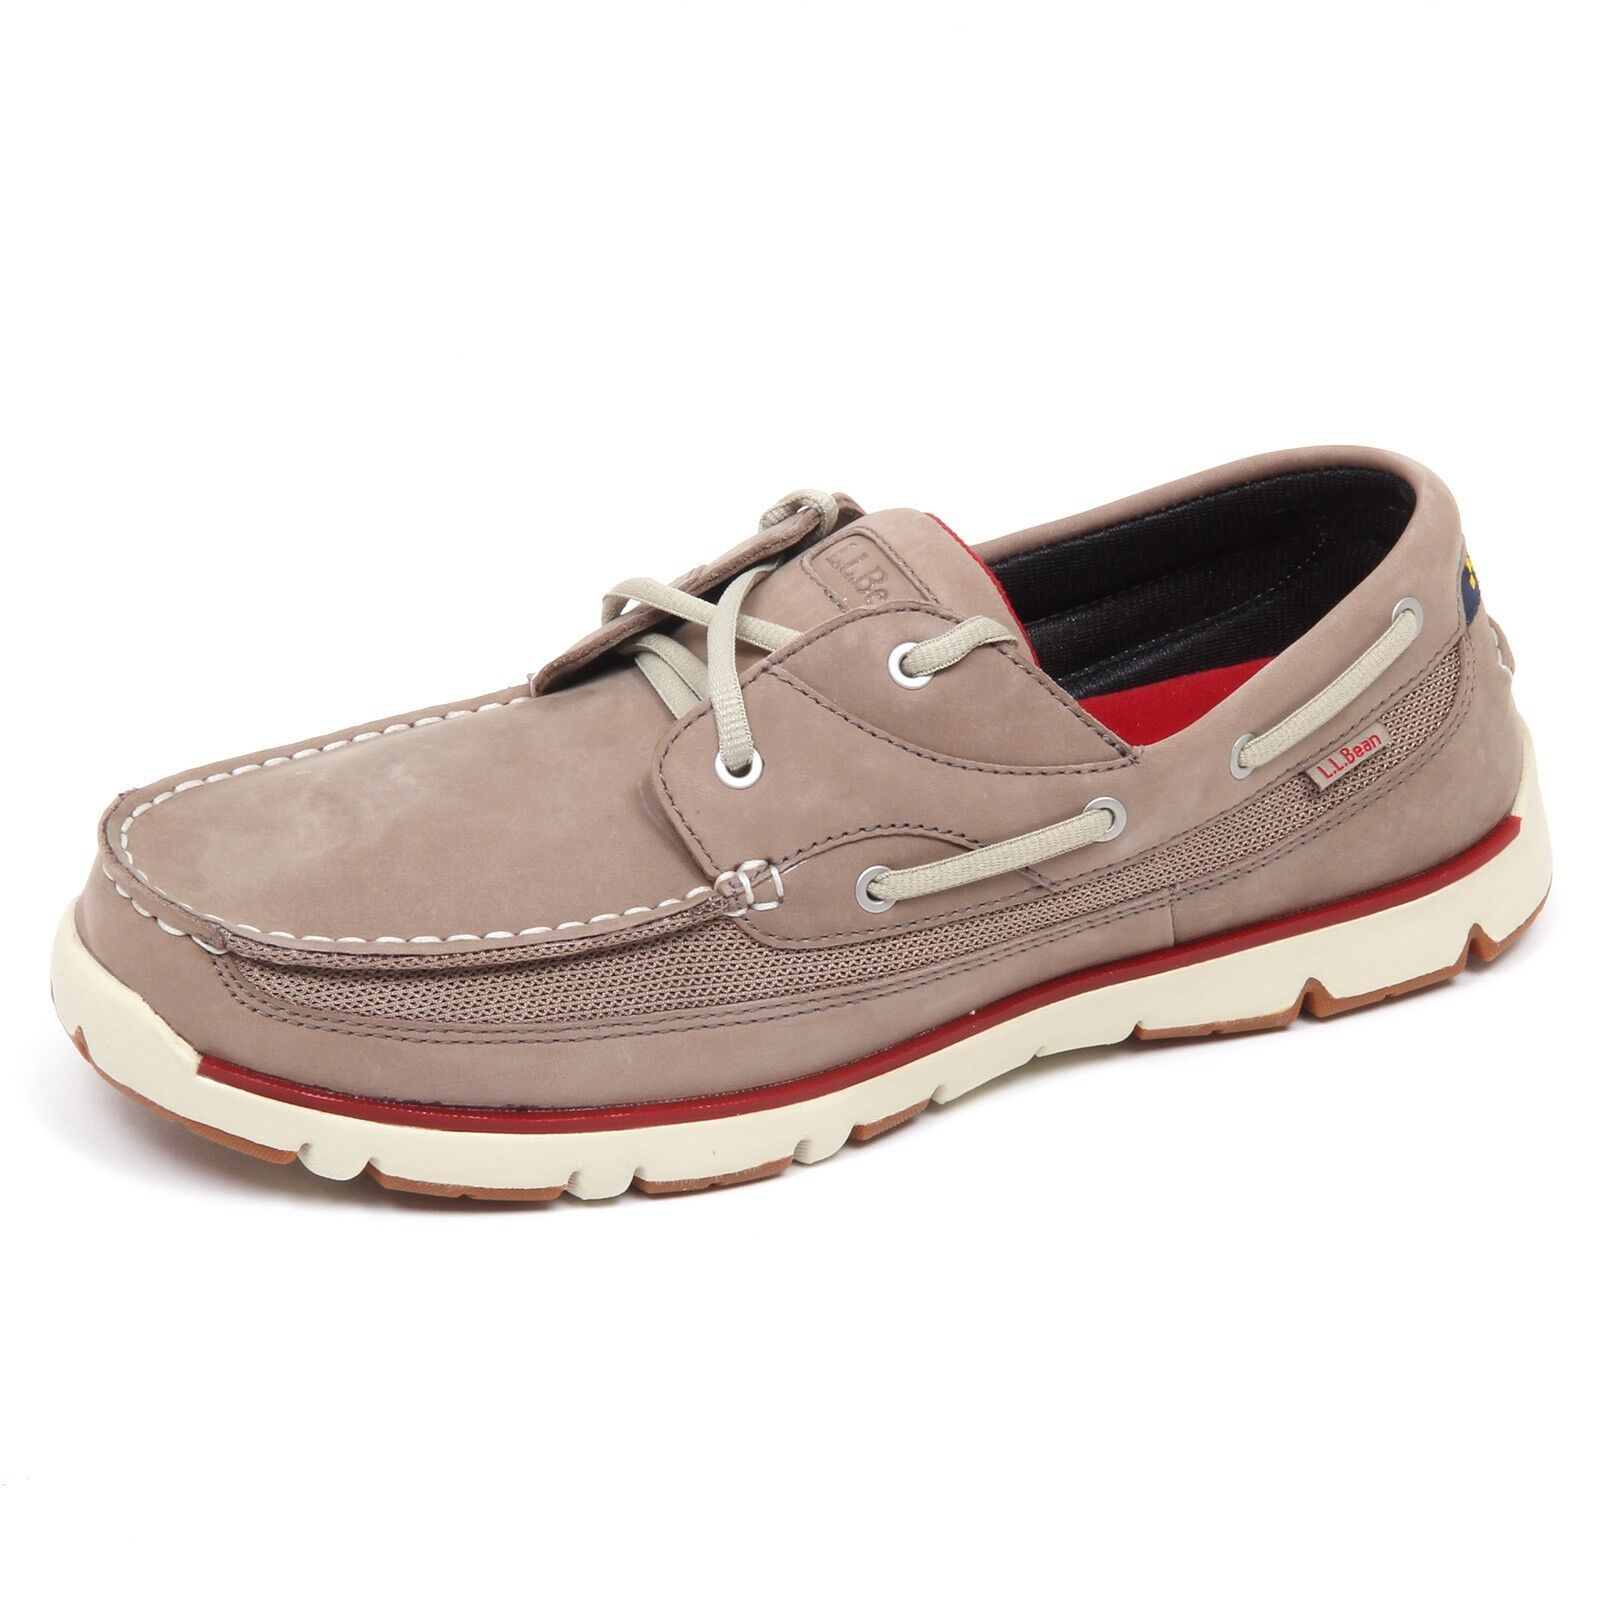 D5048 (SAMPLE NOT FOR SALES WITHOUT BOX) mocassino uomo taupe L.L.BEAN shoe man